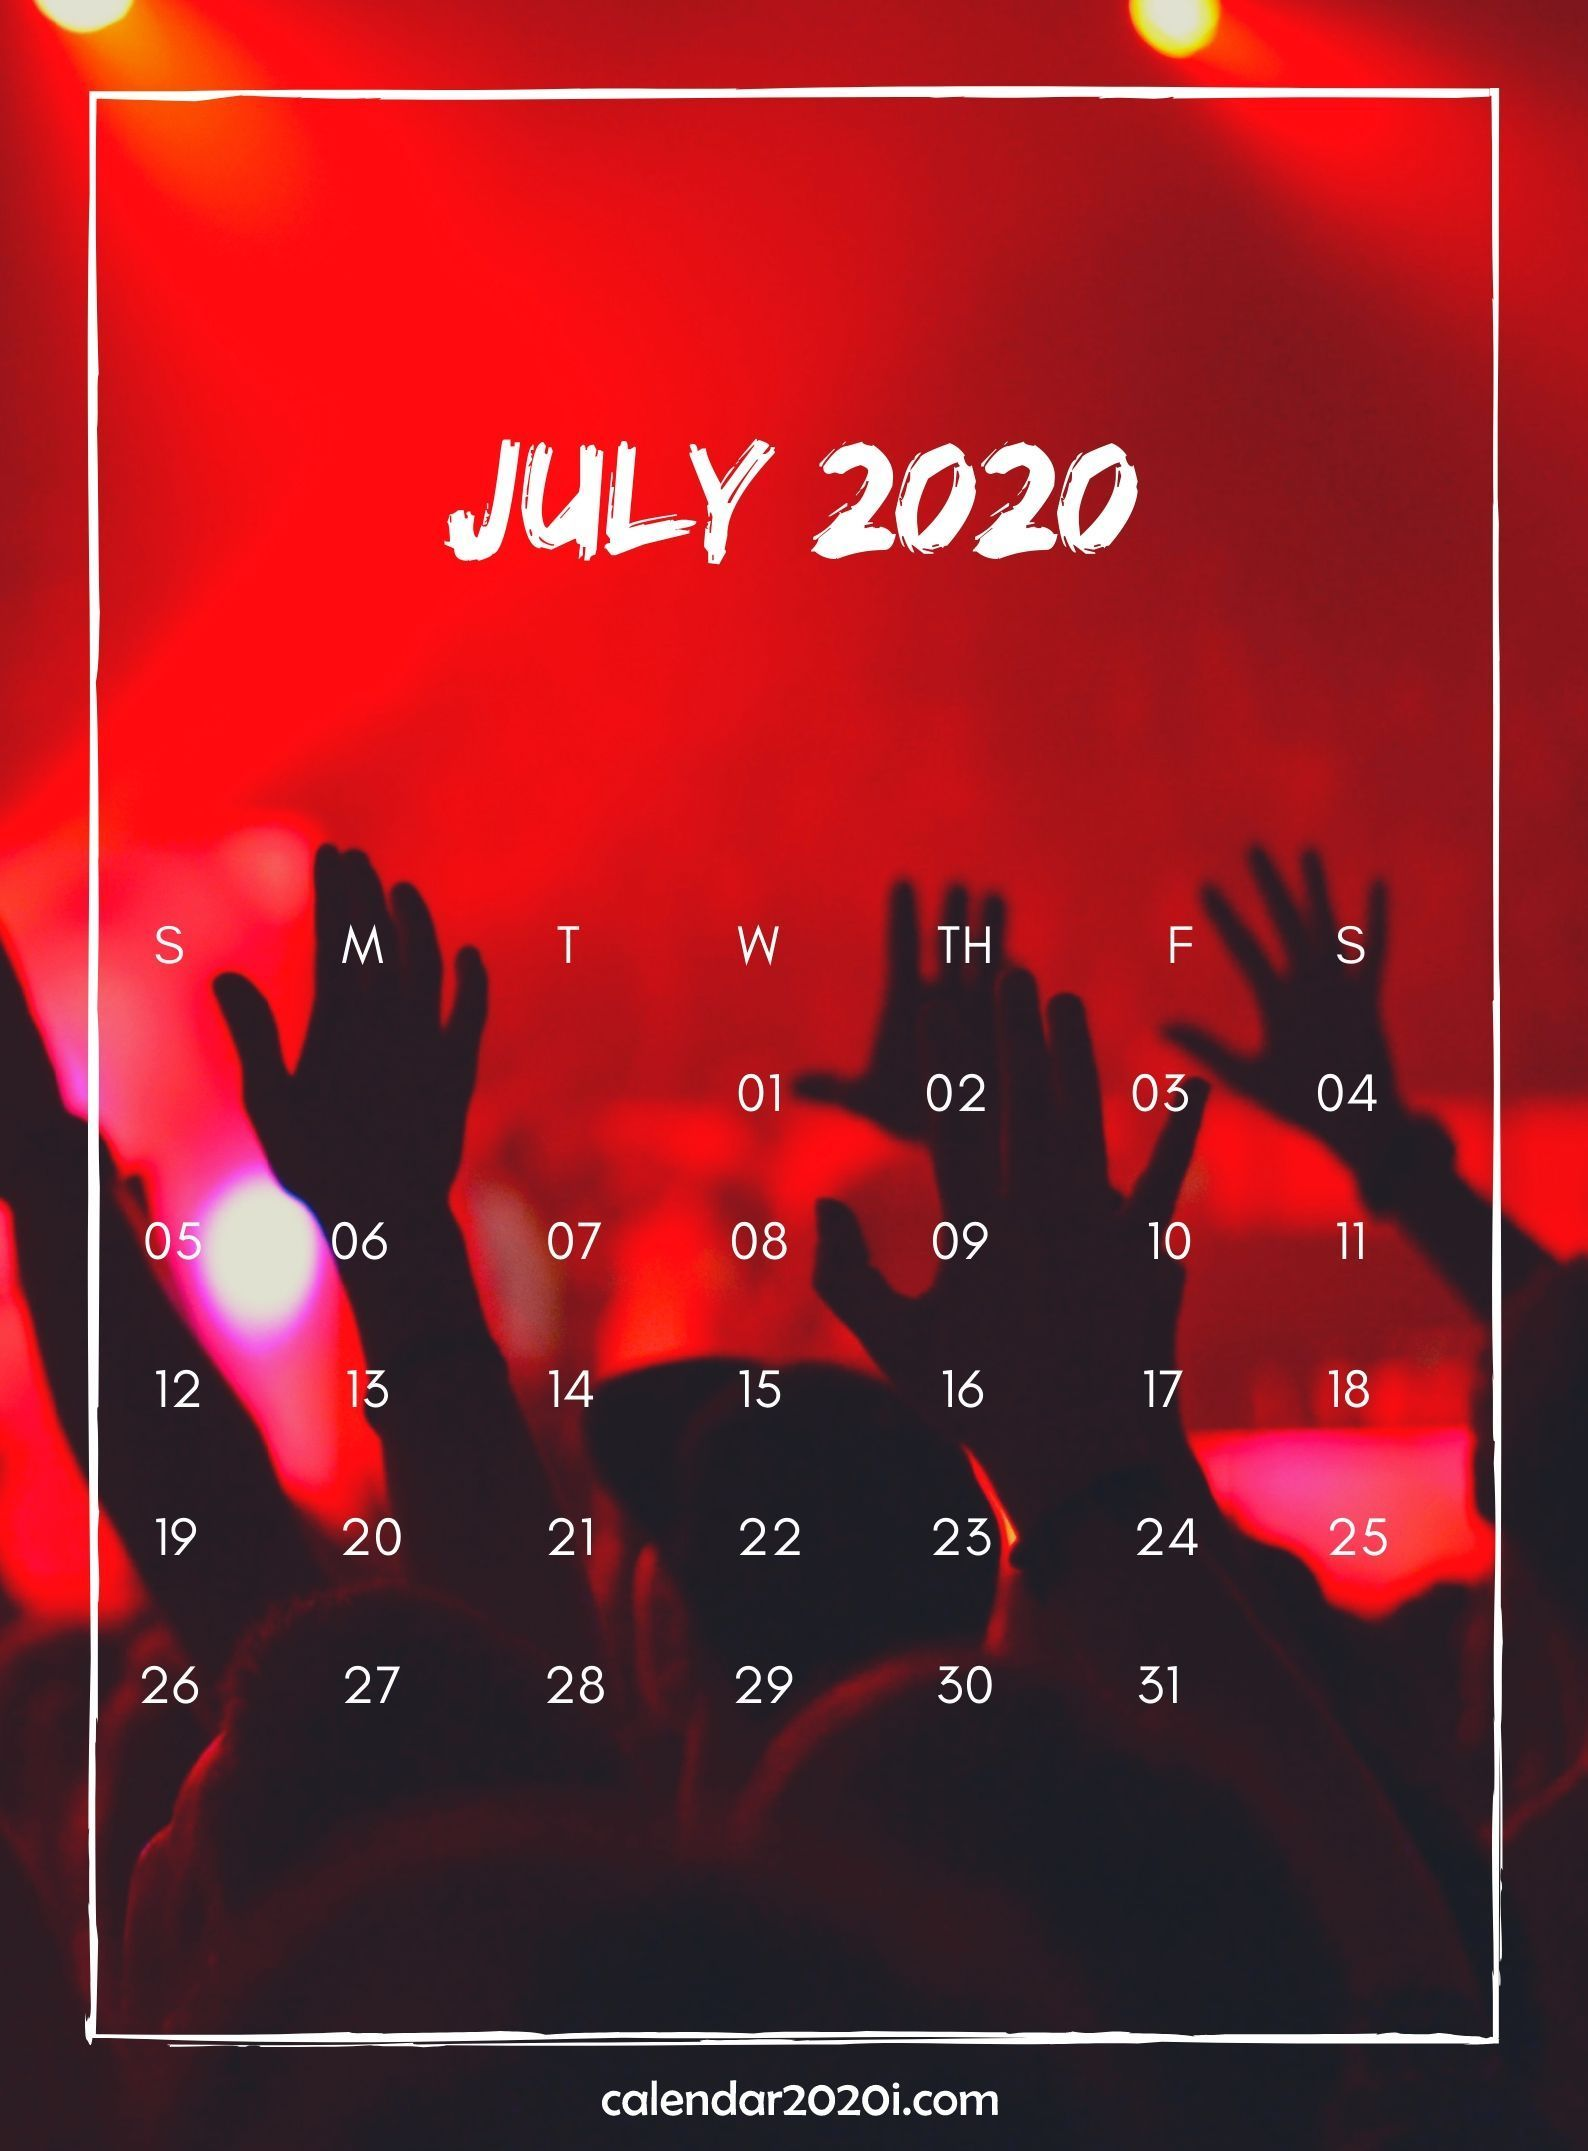 July 2020 Wall Calendar Printable 2020 Calendars Calendar 1588x2151